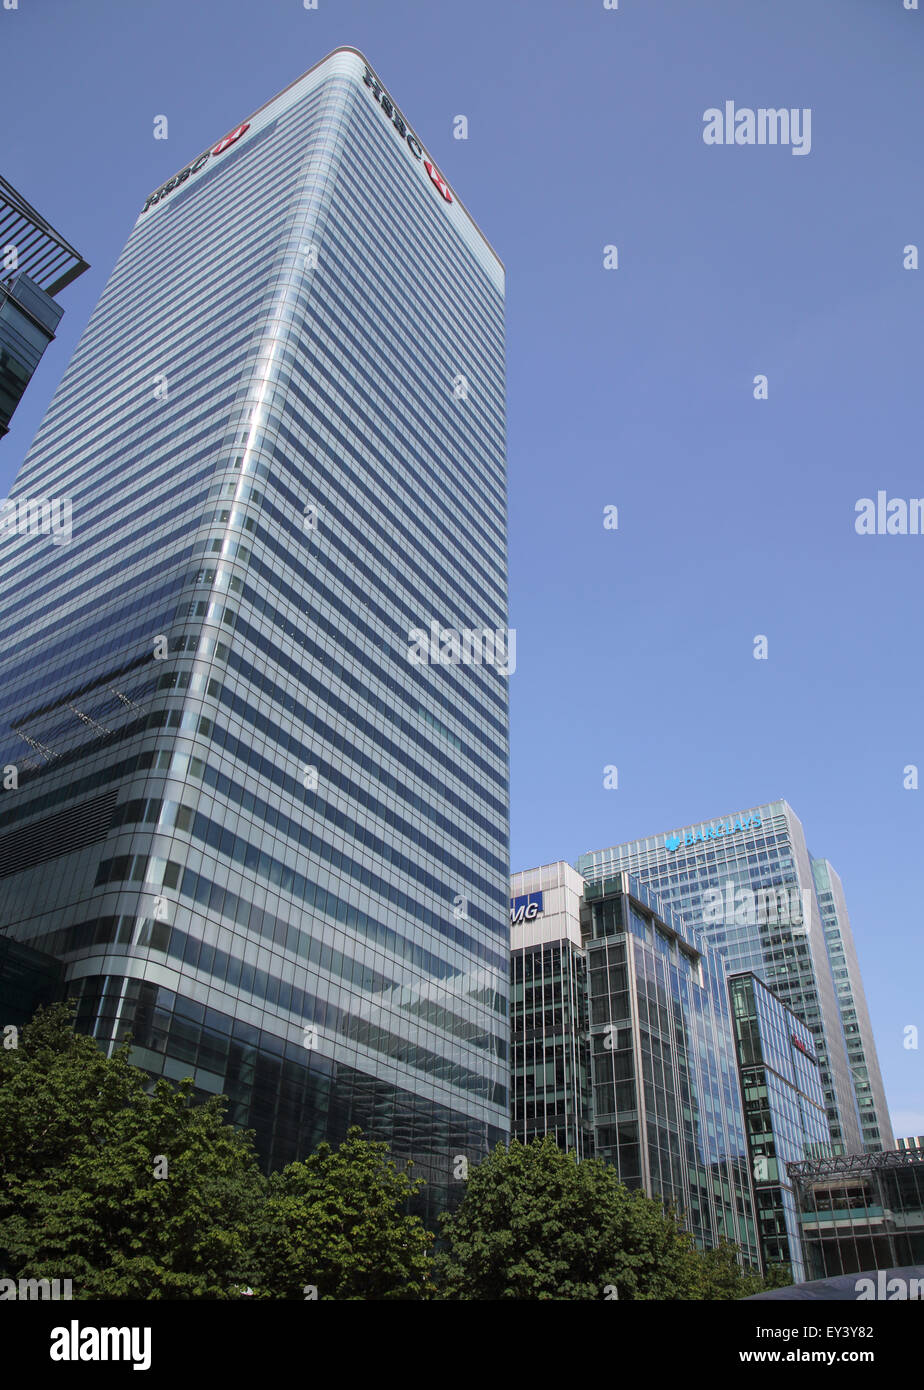 hsbc bank in the london docklands - Stock Image